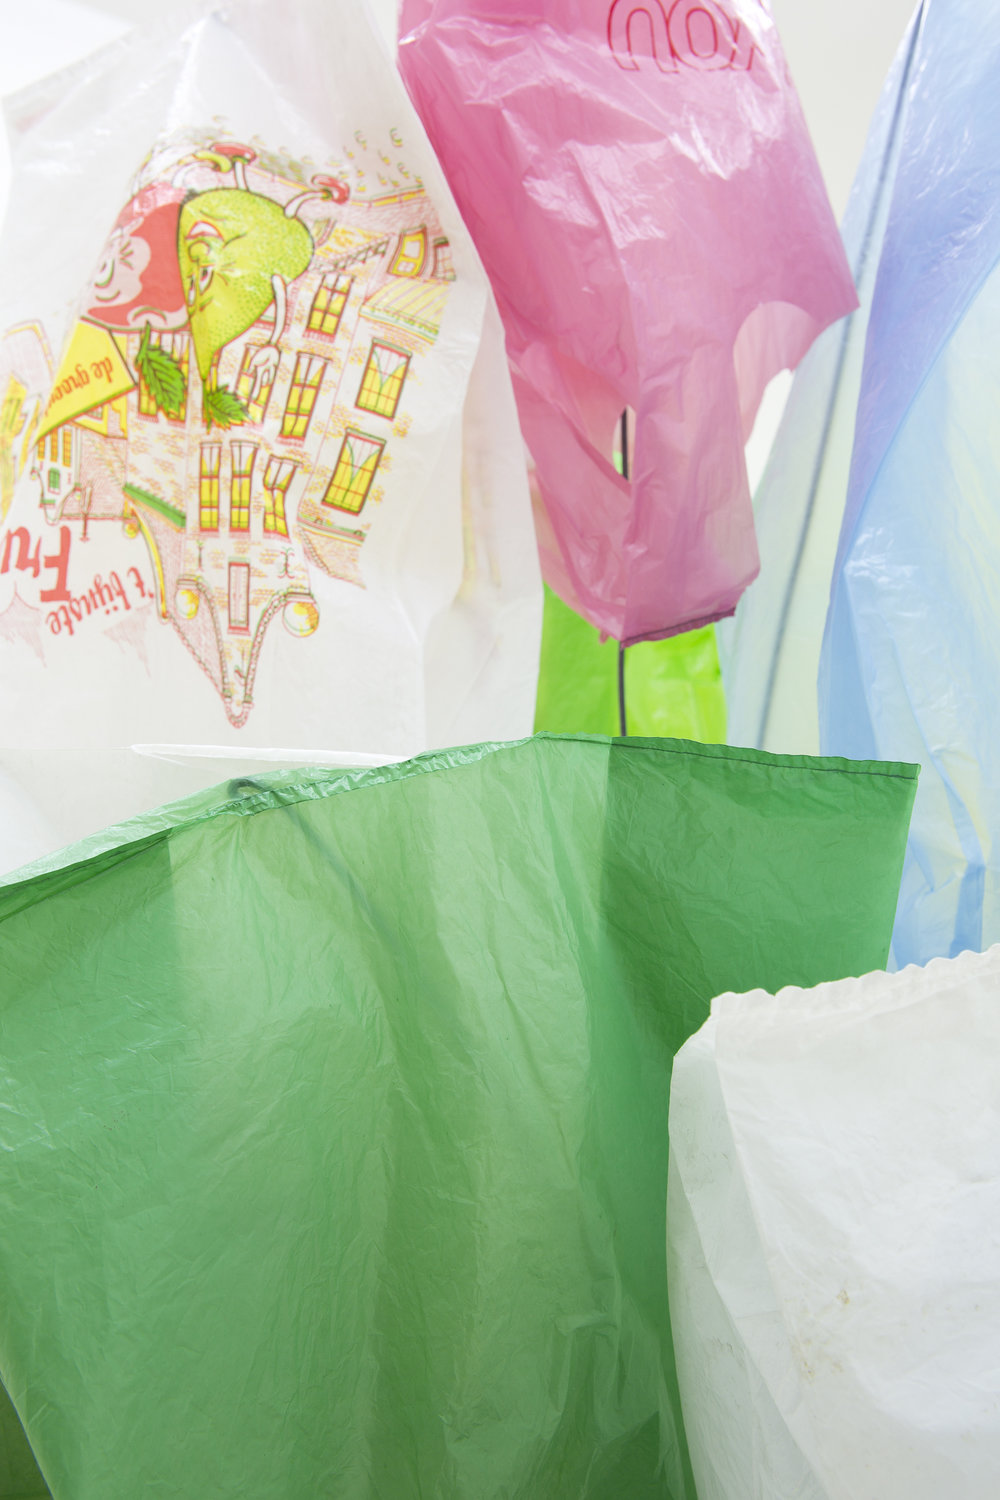 Bunch #4, 1996, Metal, wood, wire, enamel paint, plastic bags, ca. 250 cm high (Detail)